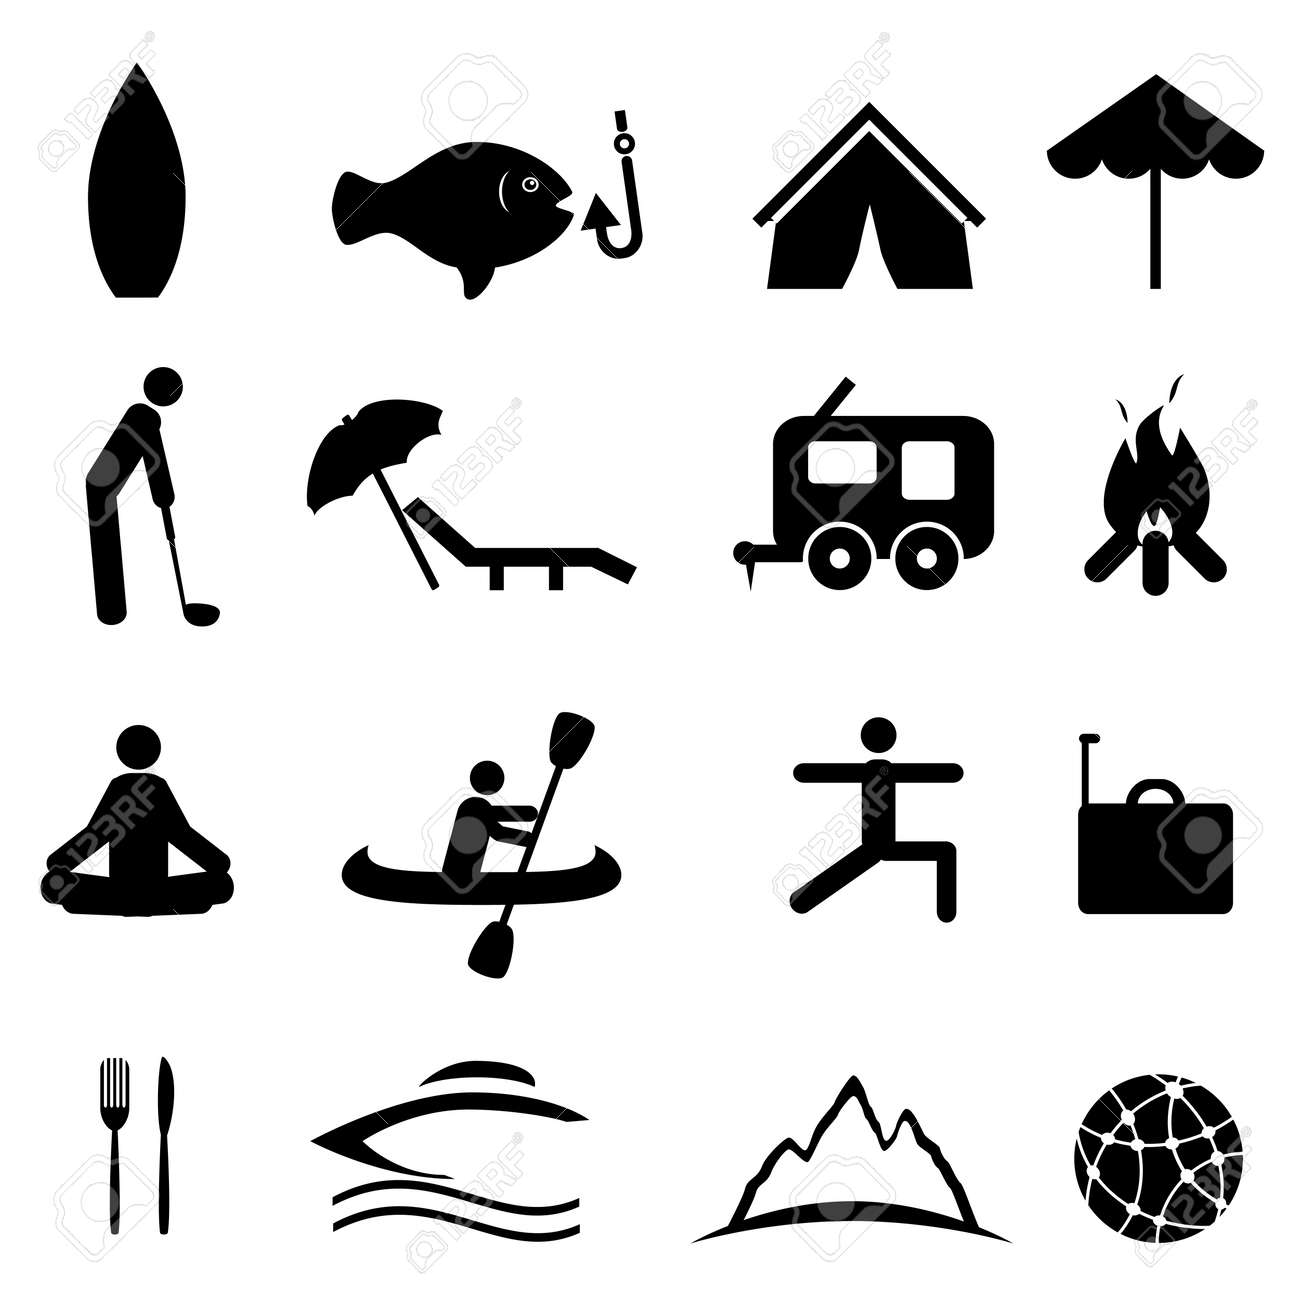 Sports and recreation icon set Stock Vector - 12305065